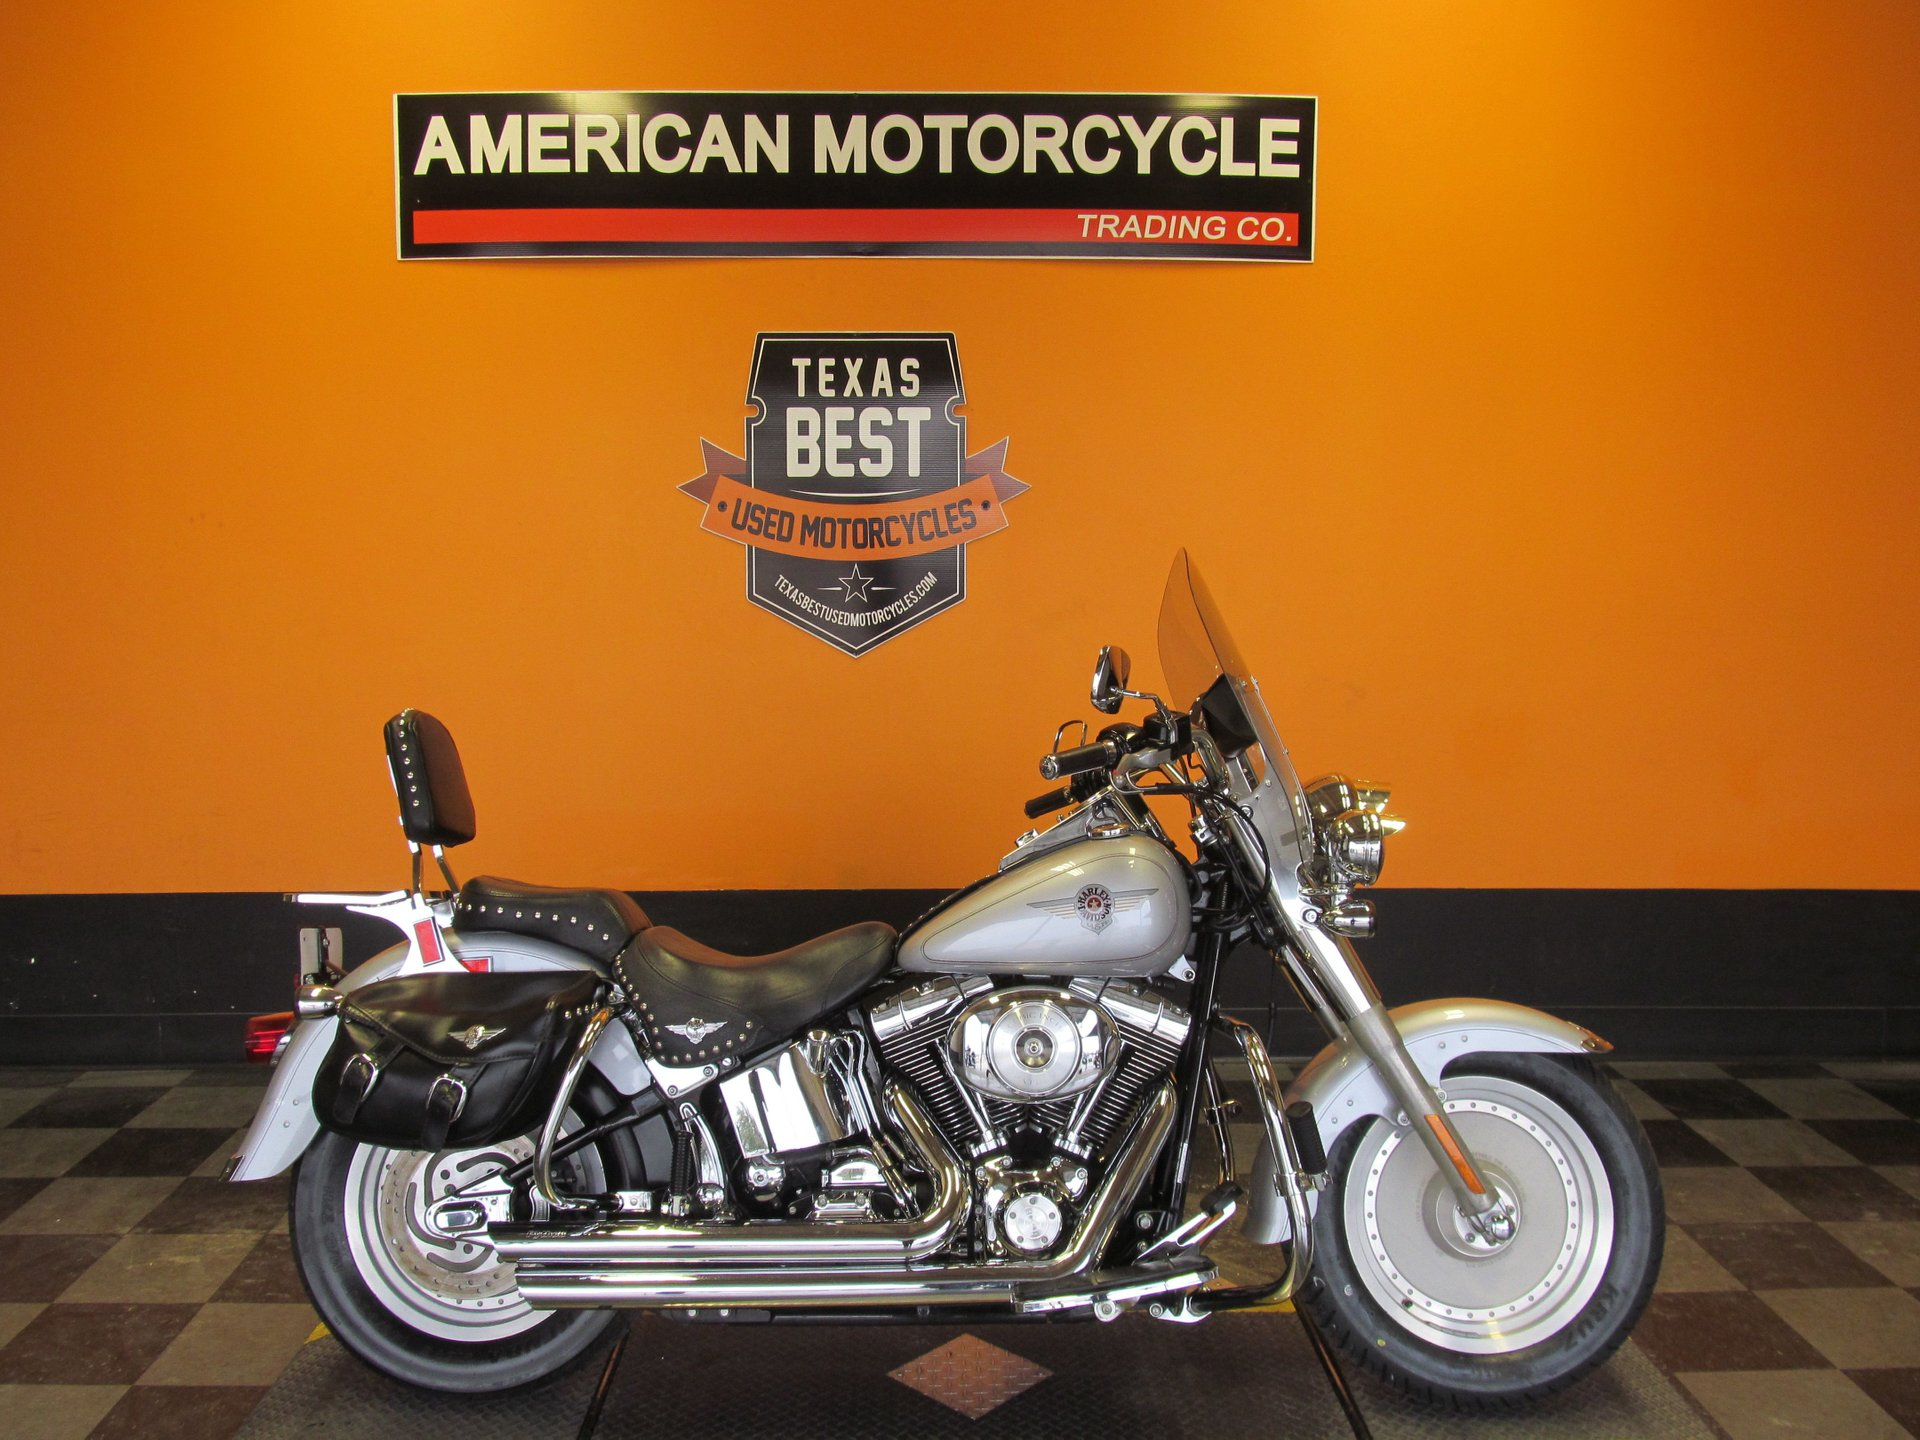 2002 harley davidson softail fat boy flstf